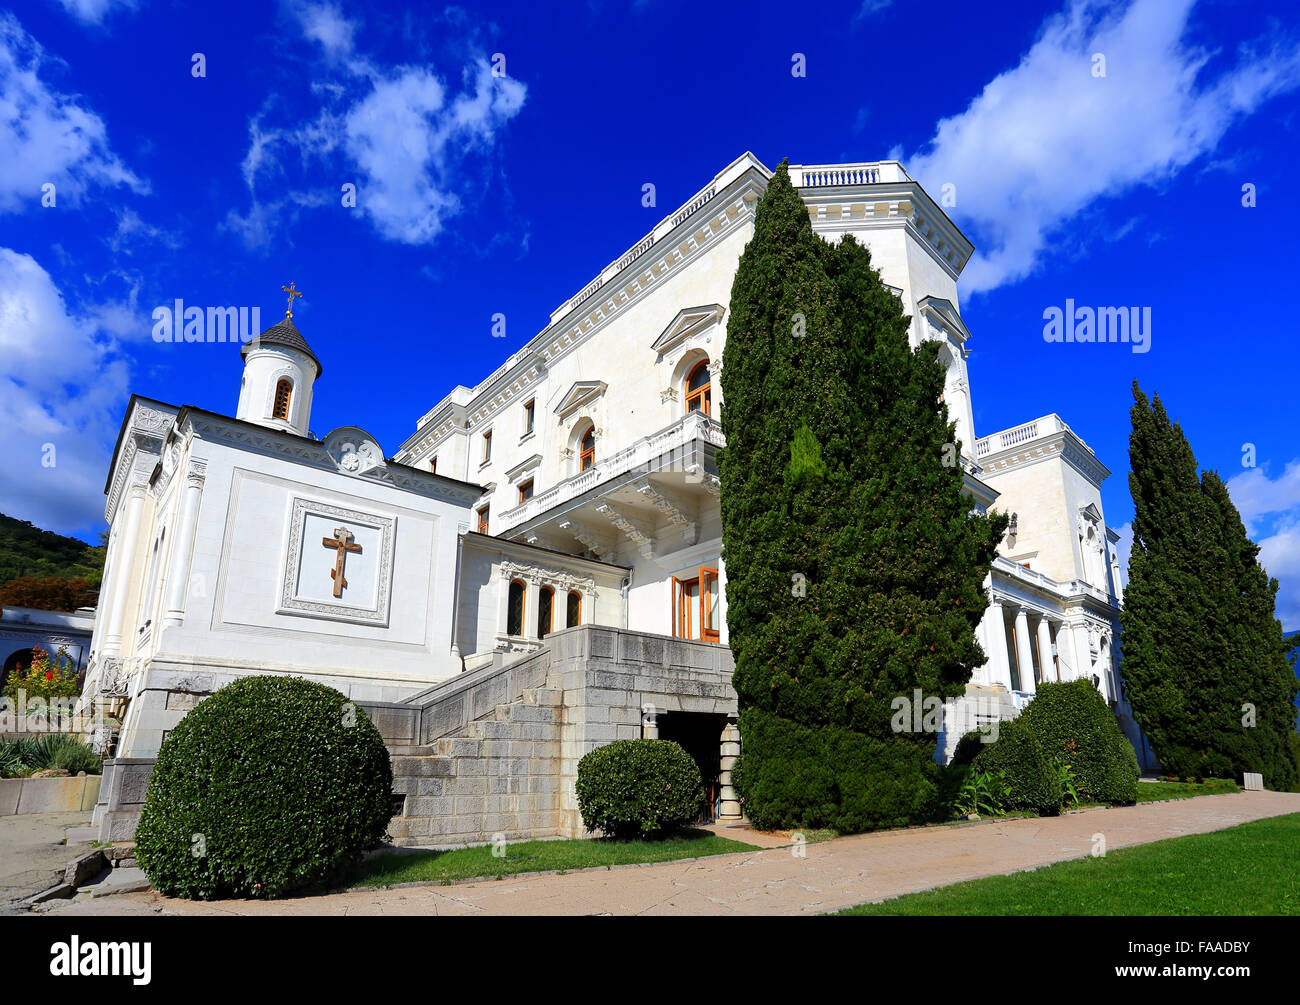 White Palace within subtropical cypress trees, pines and palm trees - Stock Image